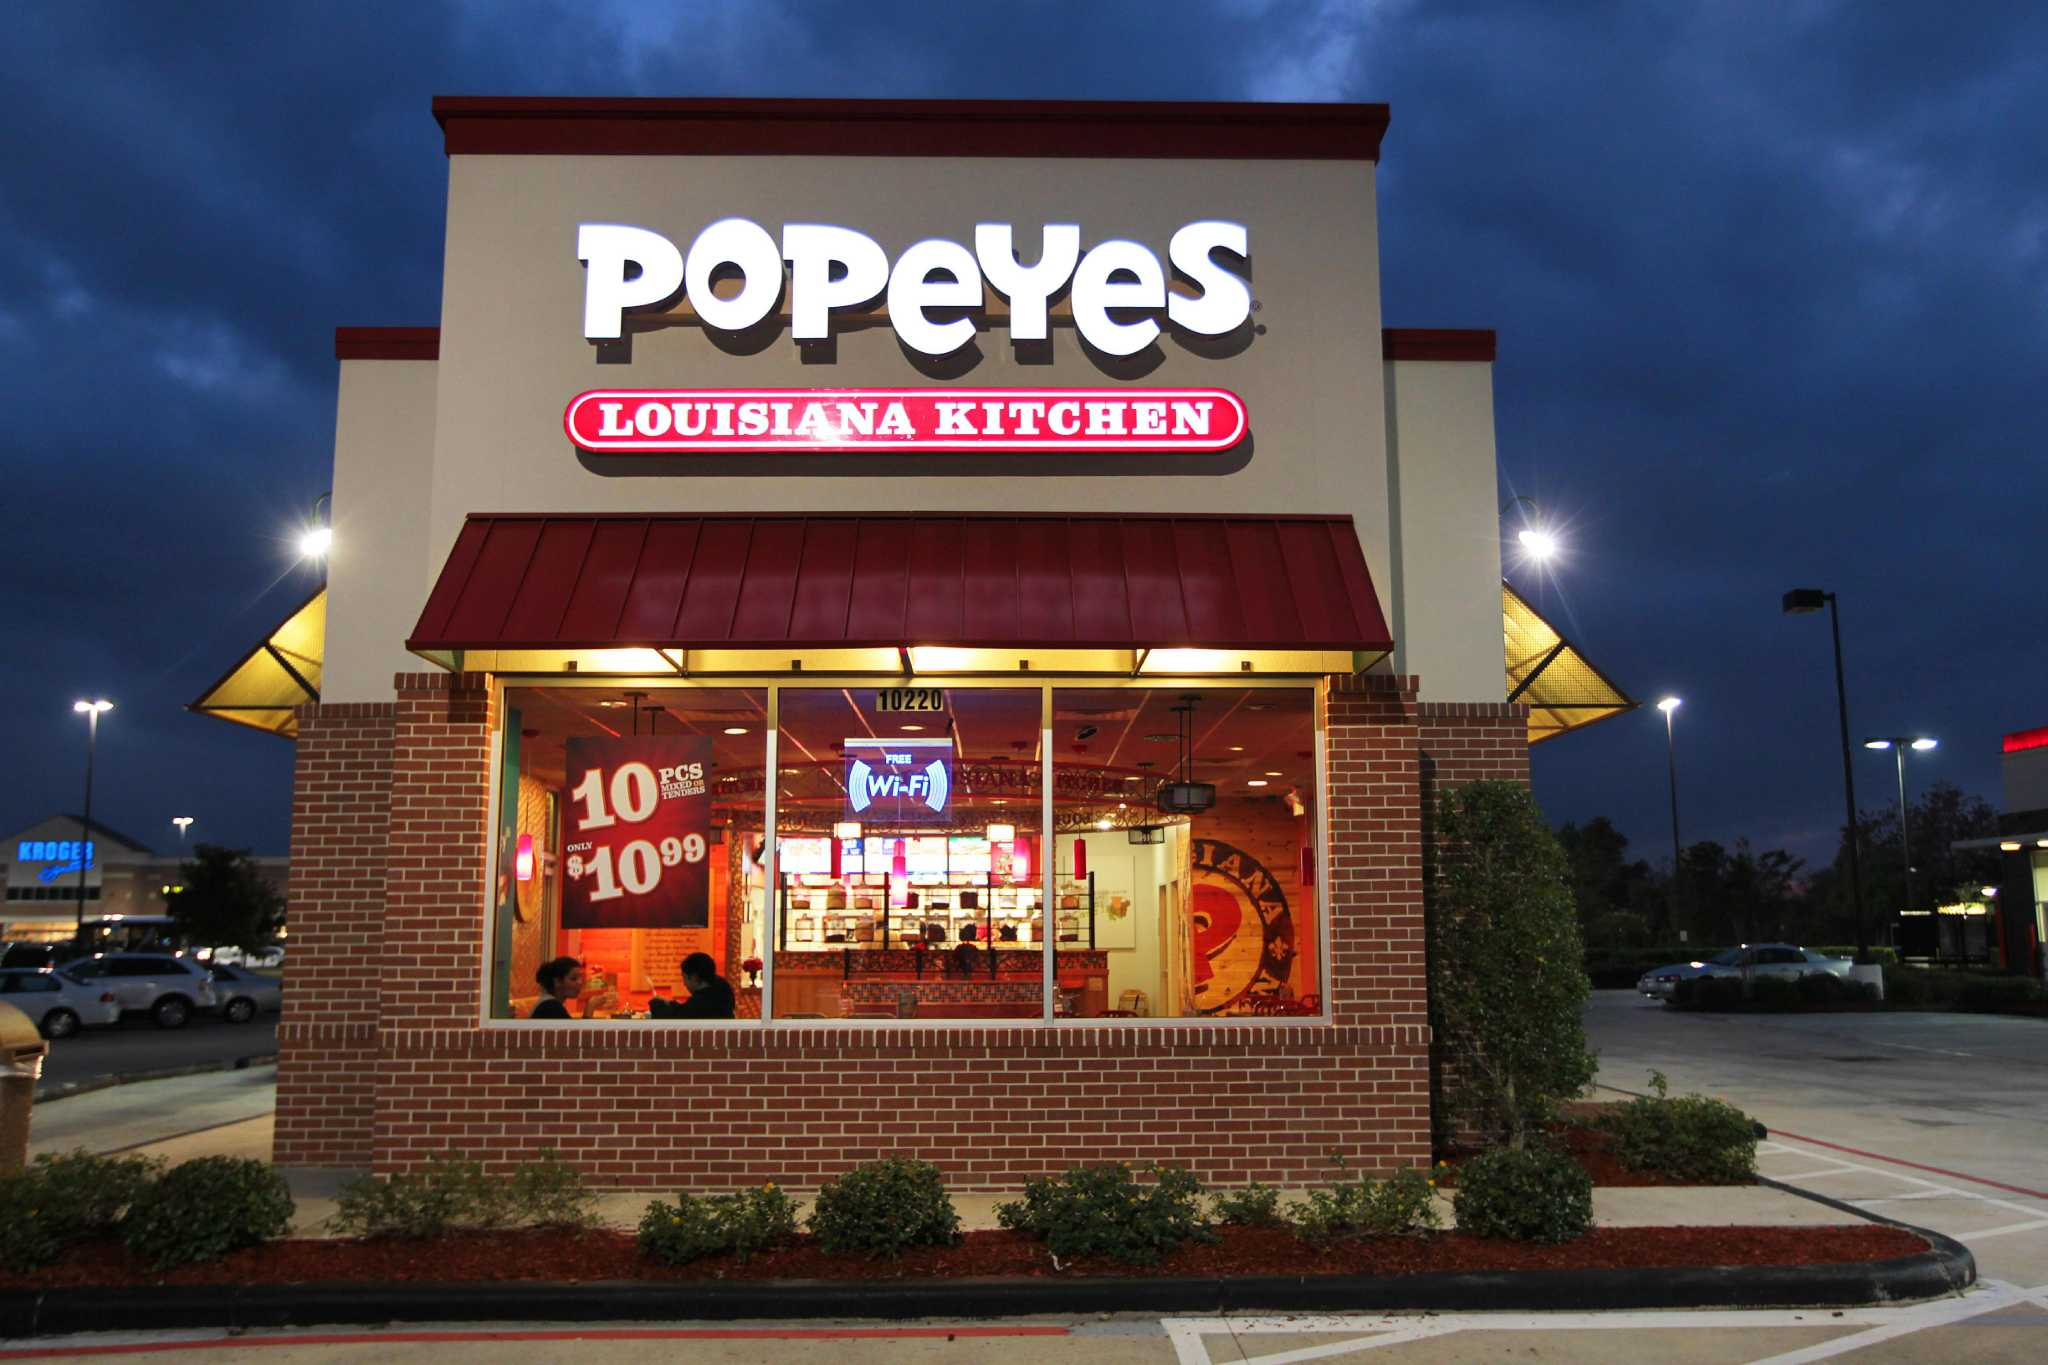 Popeyes Louisiana Kitchen Lady San Antonio Woman Sues Over Flesheating Screwworms In Popeyes